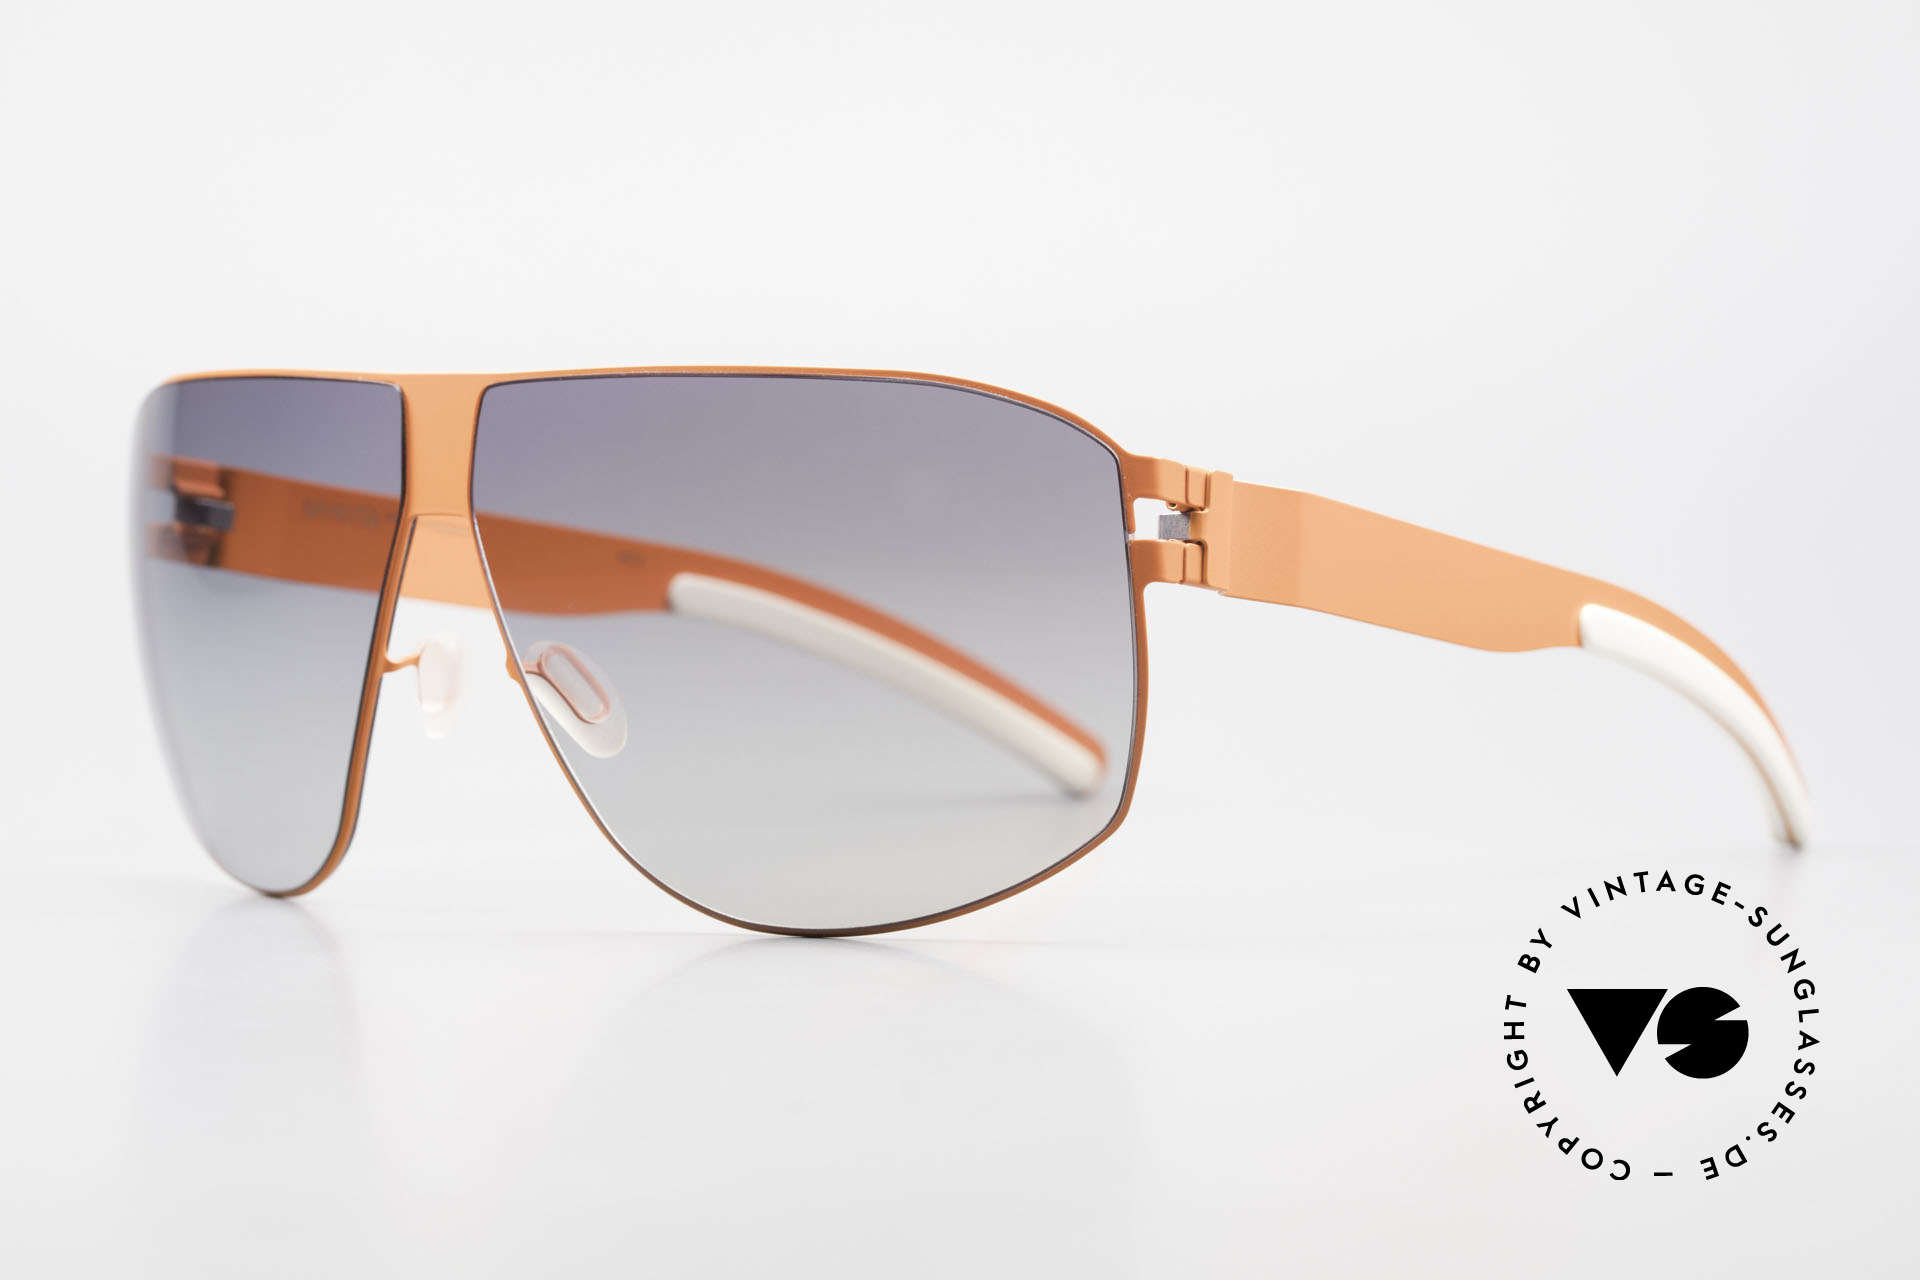 Mykita Terrence Mykita Shades Neonorange, innovative and flexible metal frame in Large to XL size, Made for Men